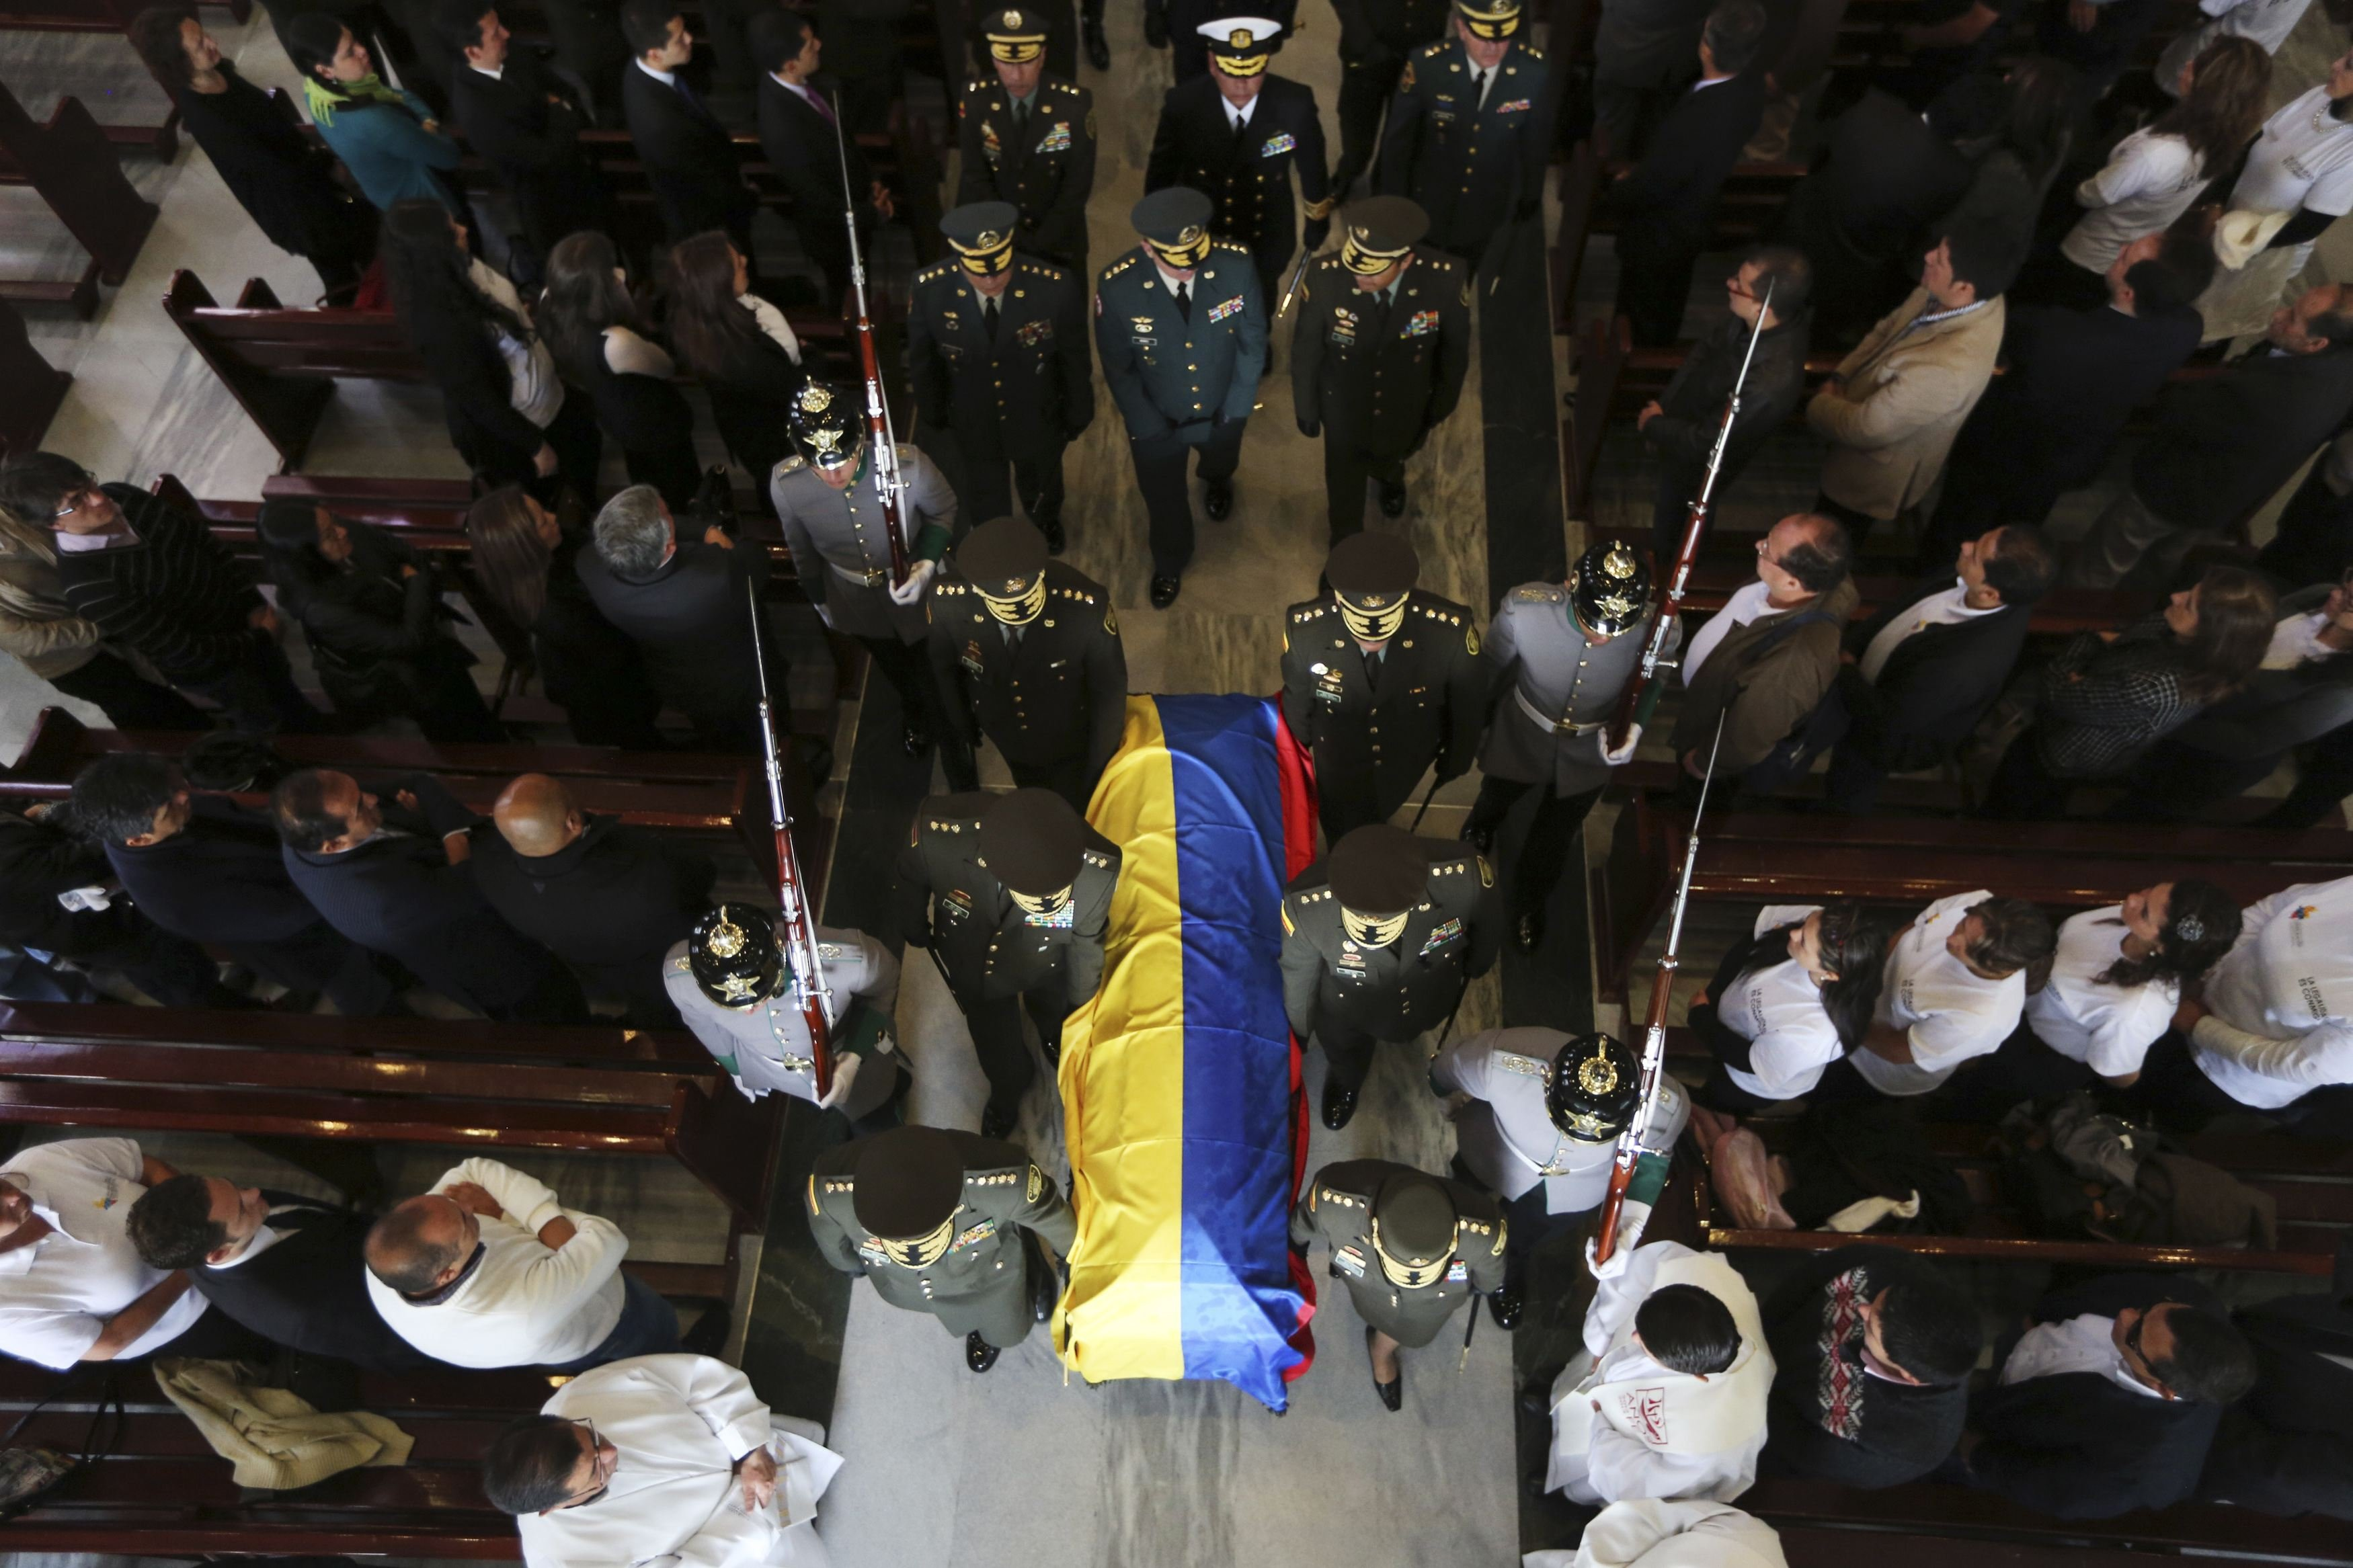 Mar. 20, 2014. Colombian police commanders carry the casket of Major German Mendez of the Colombian police force during his funeral at a religious center in Bogota, Columbia.